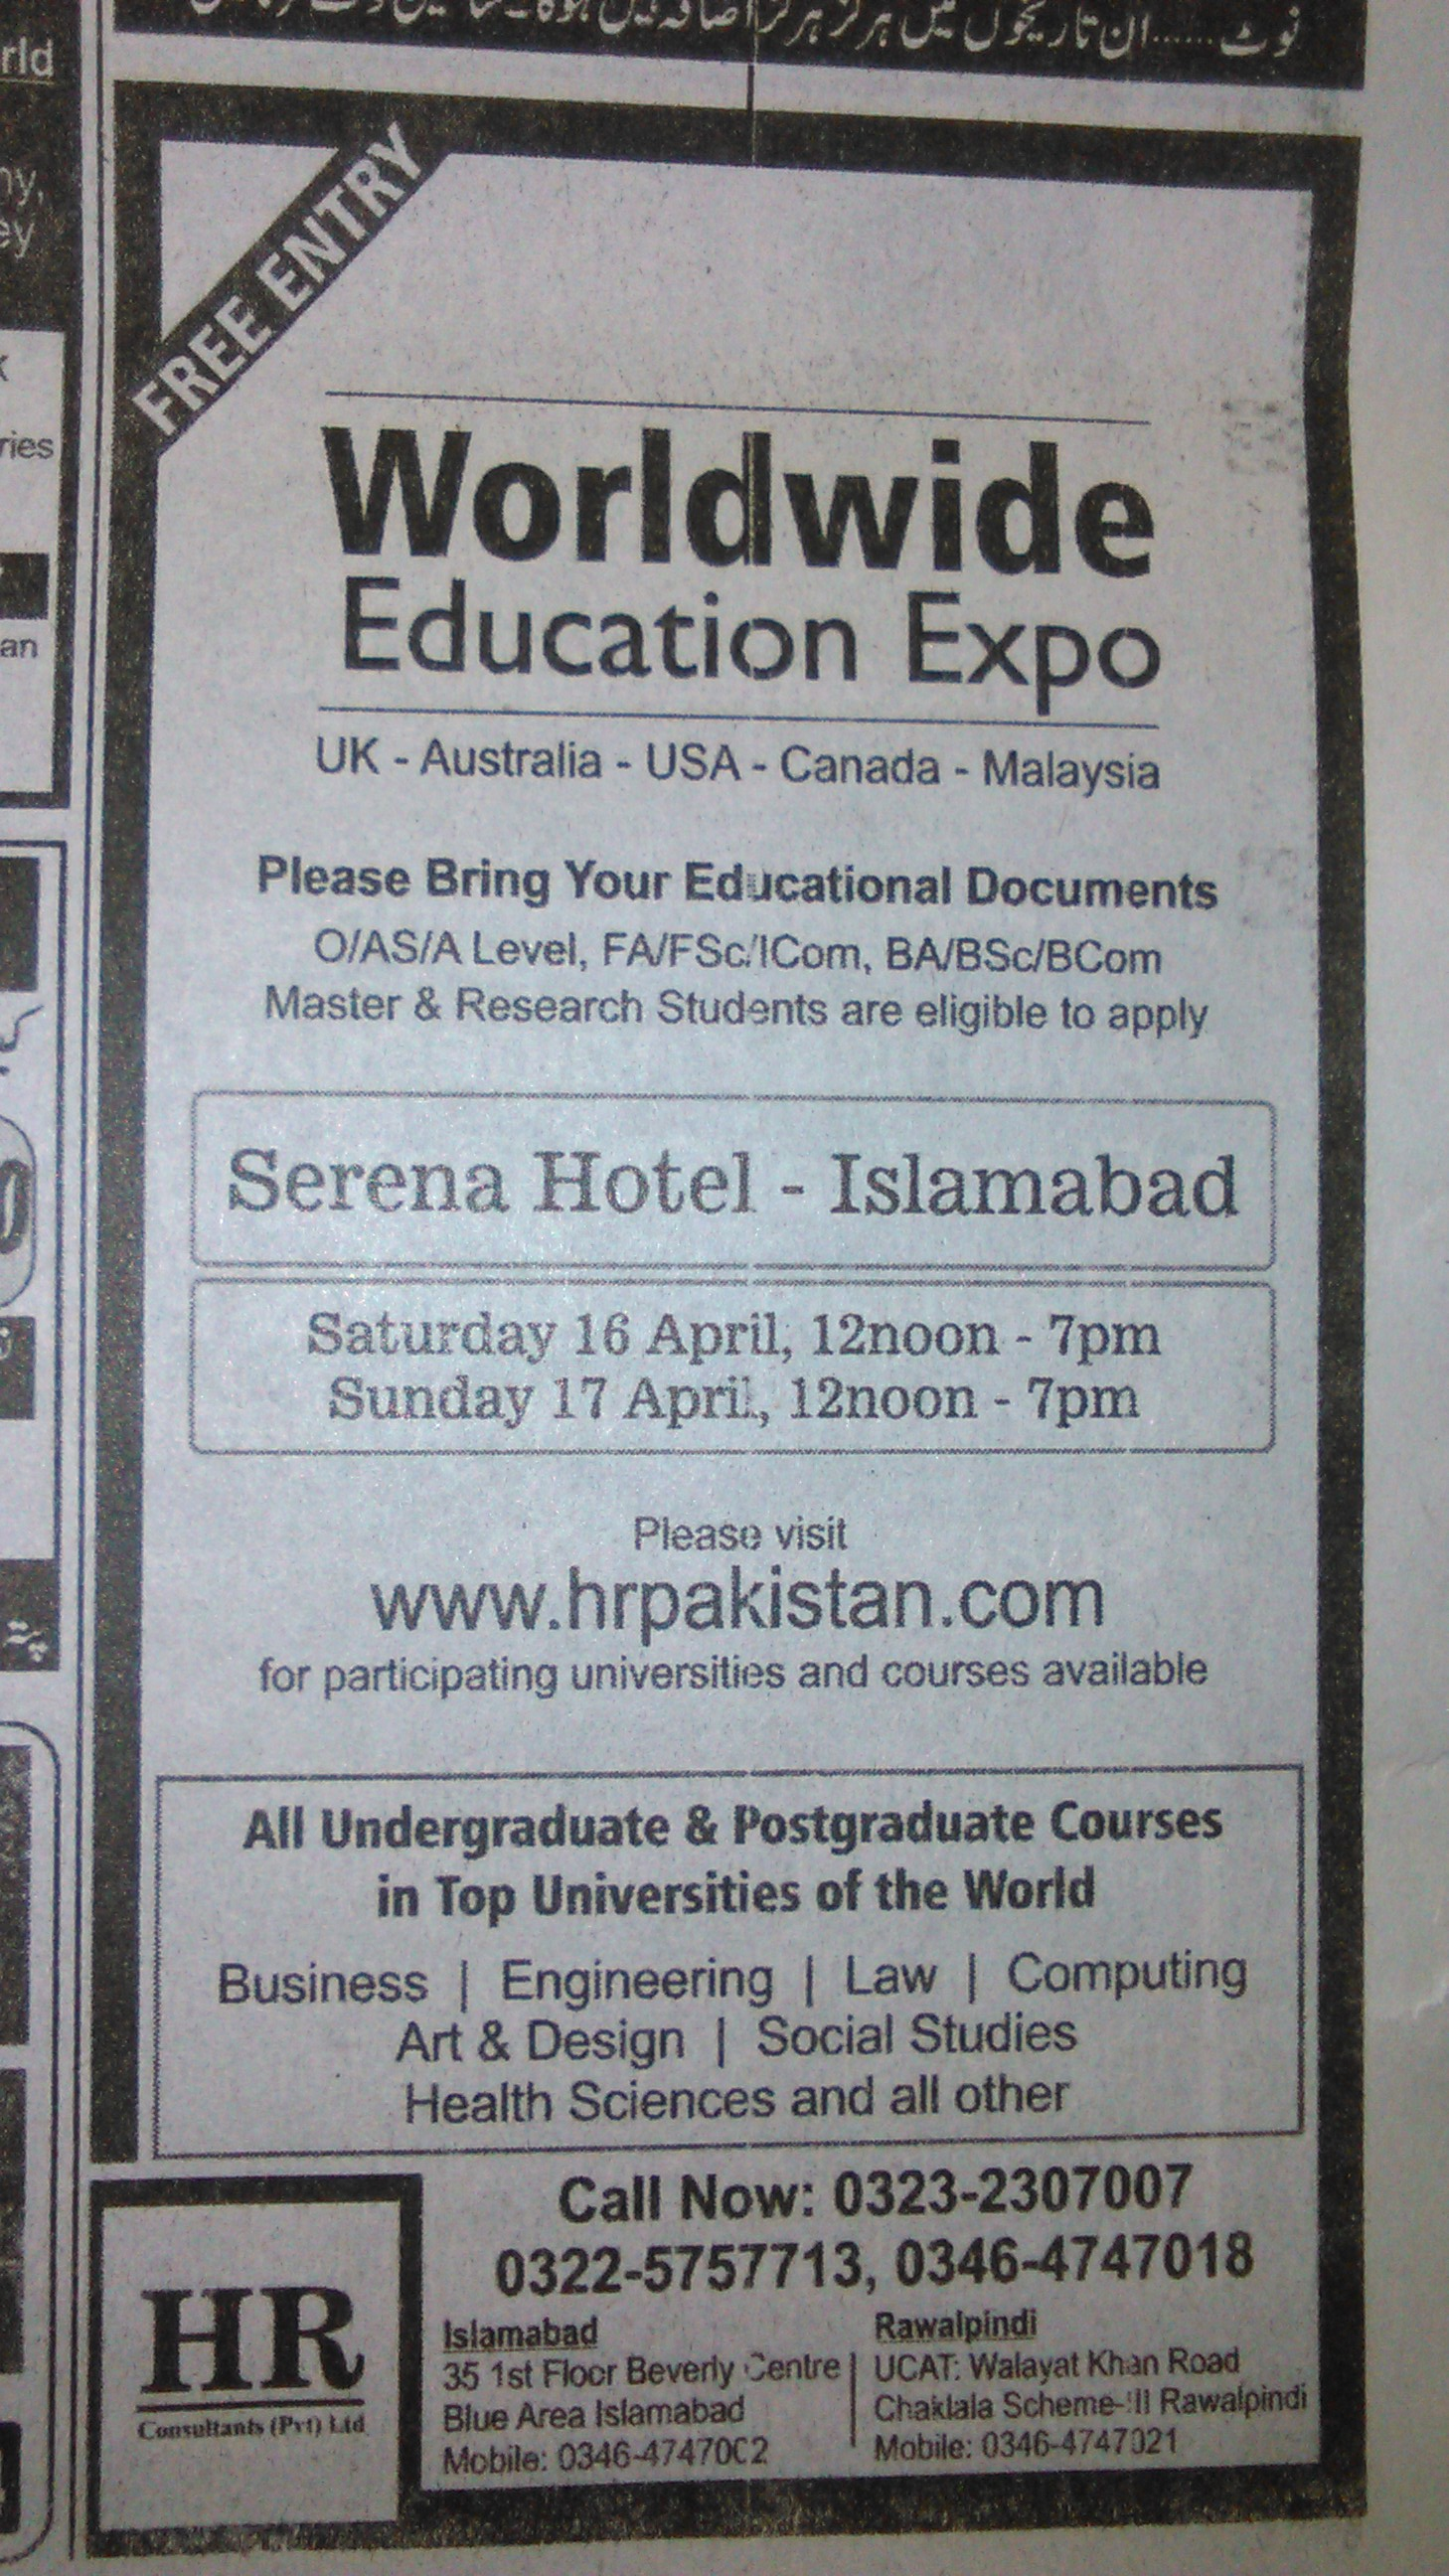 World Wide Education Expo